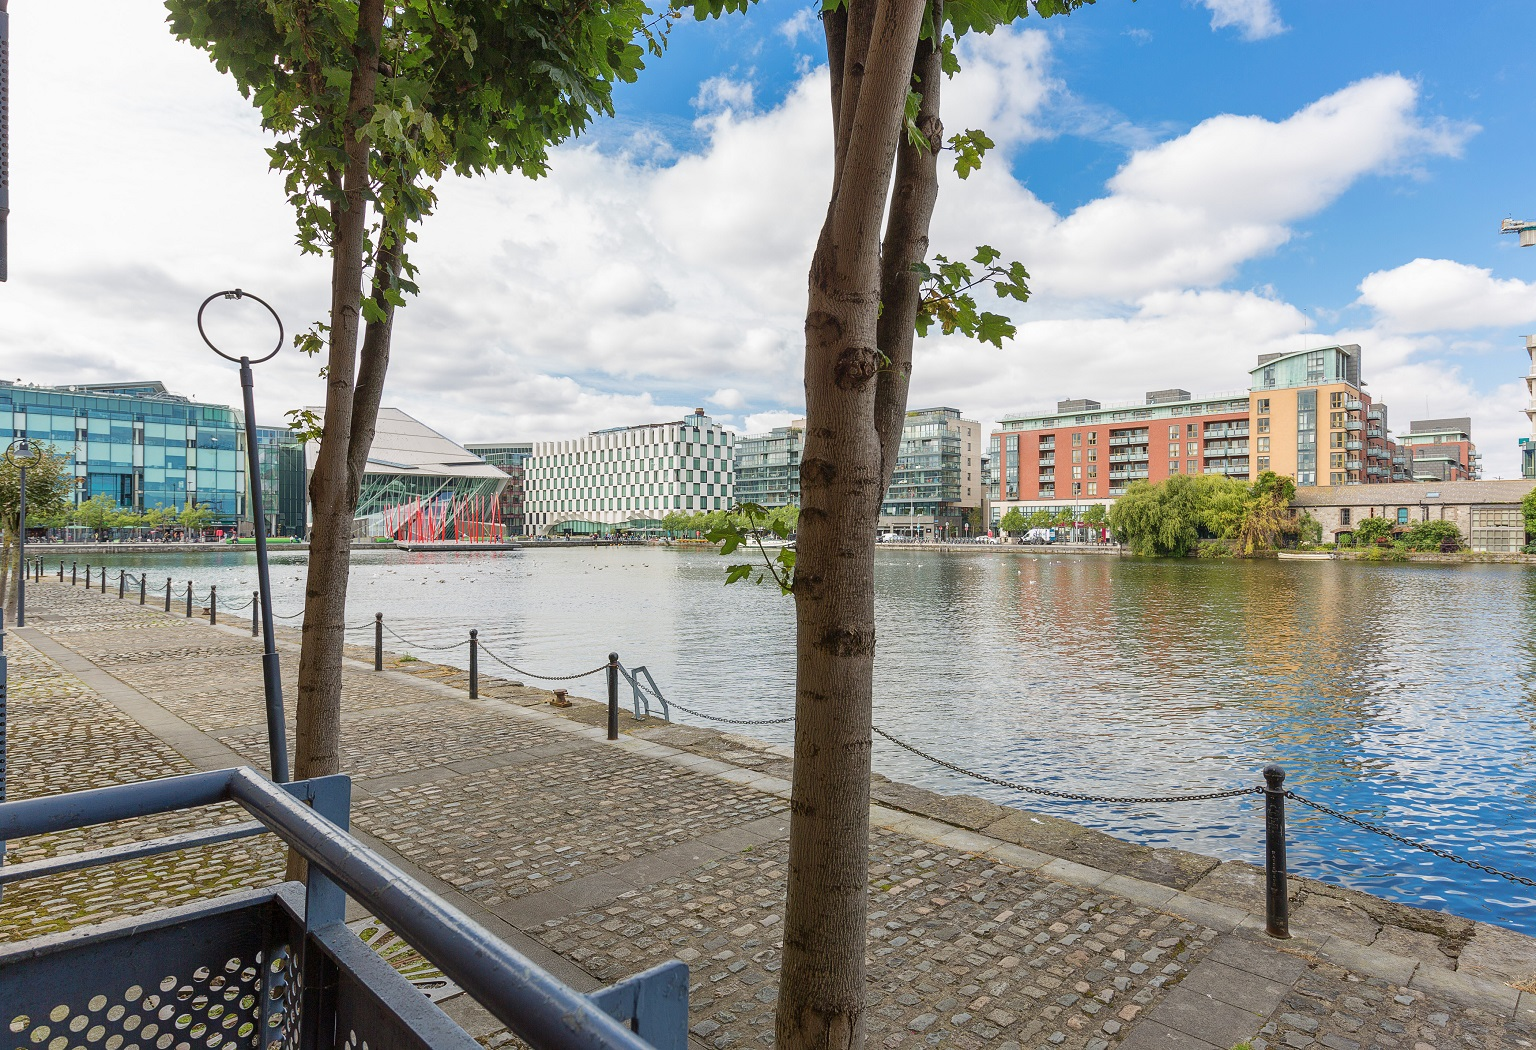 179 The George, Charlotte Quay Dock, Grand Canal Dock